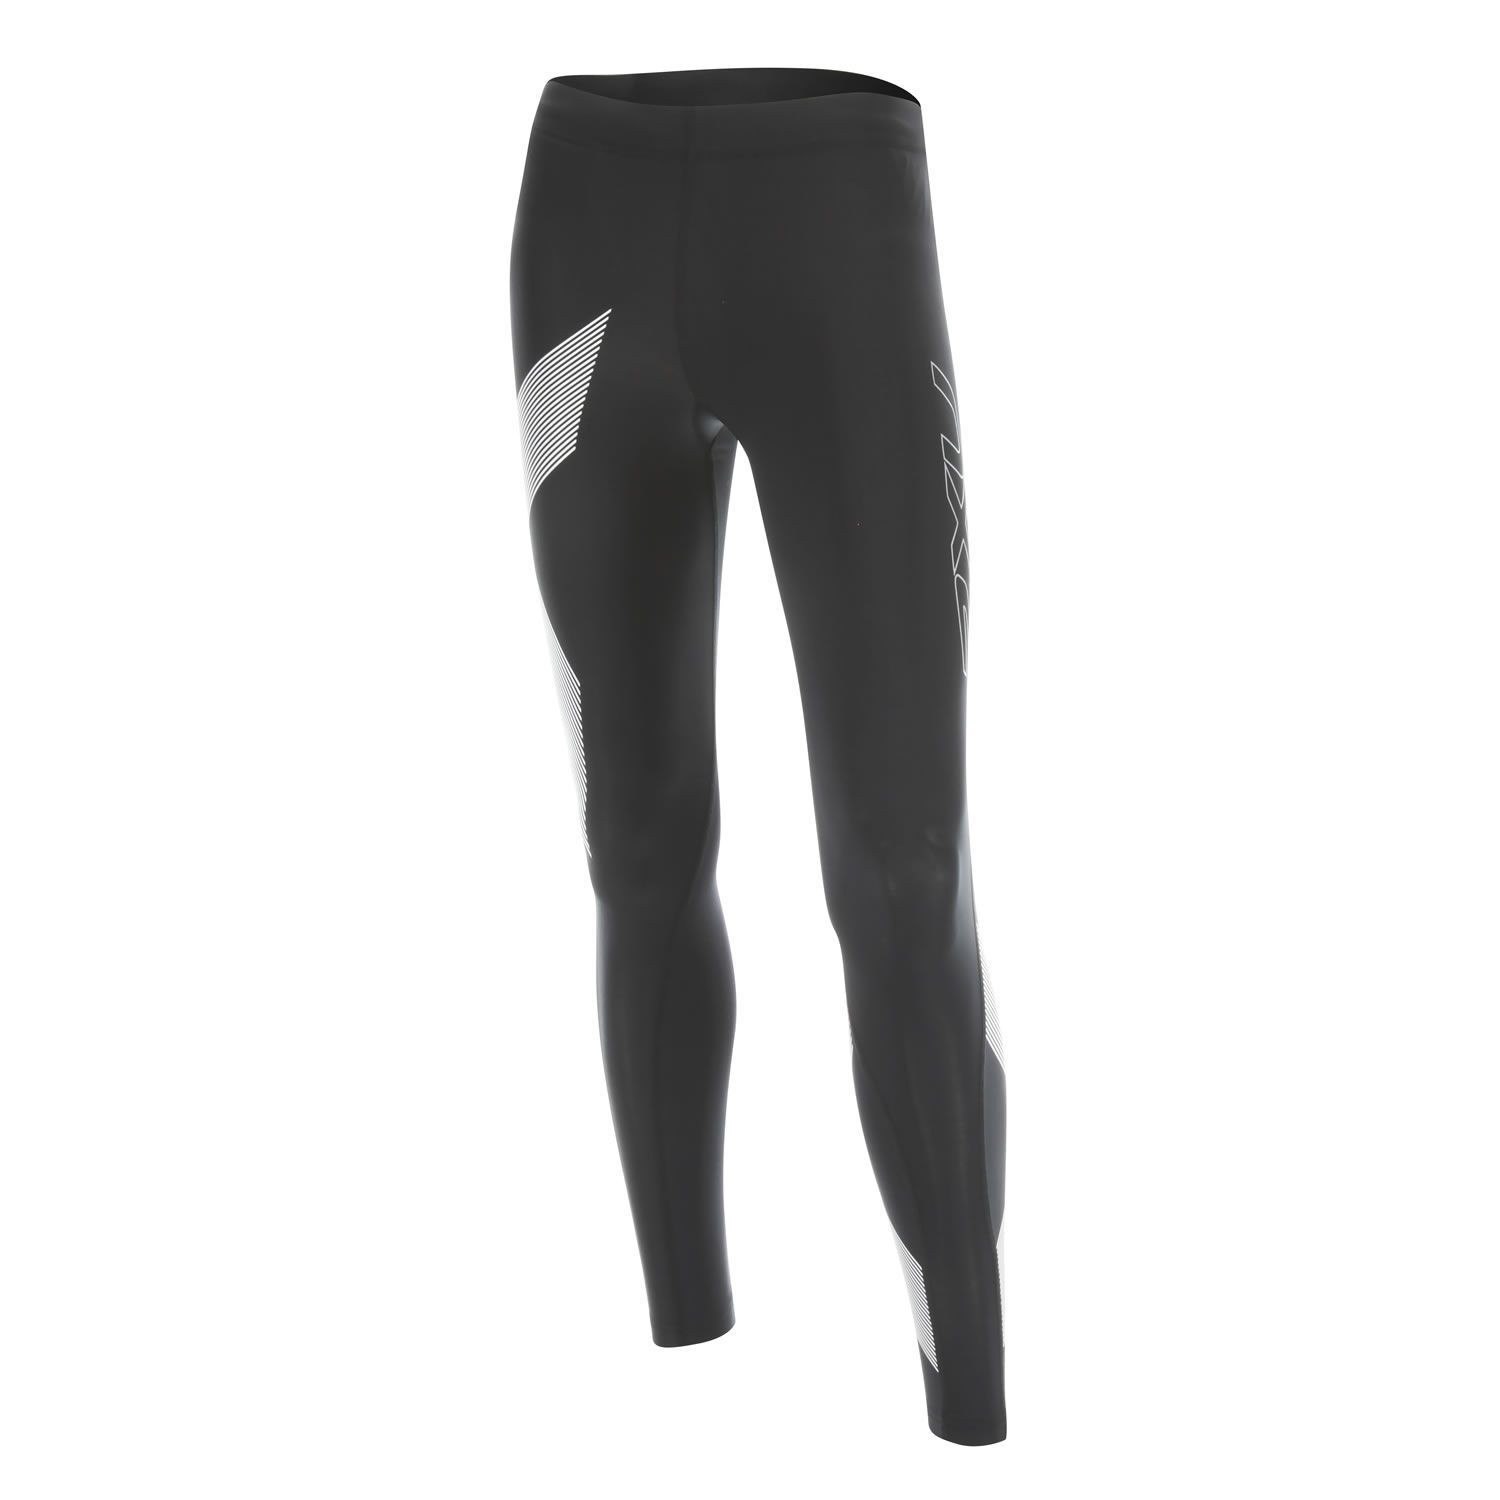 PANTALONI 2XU WOMEN COMPRESSION TIGHTS WA4173B BLK SWT.jpg